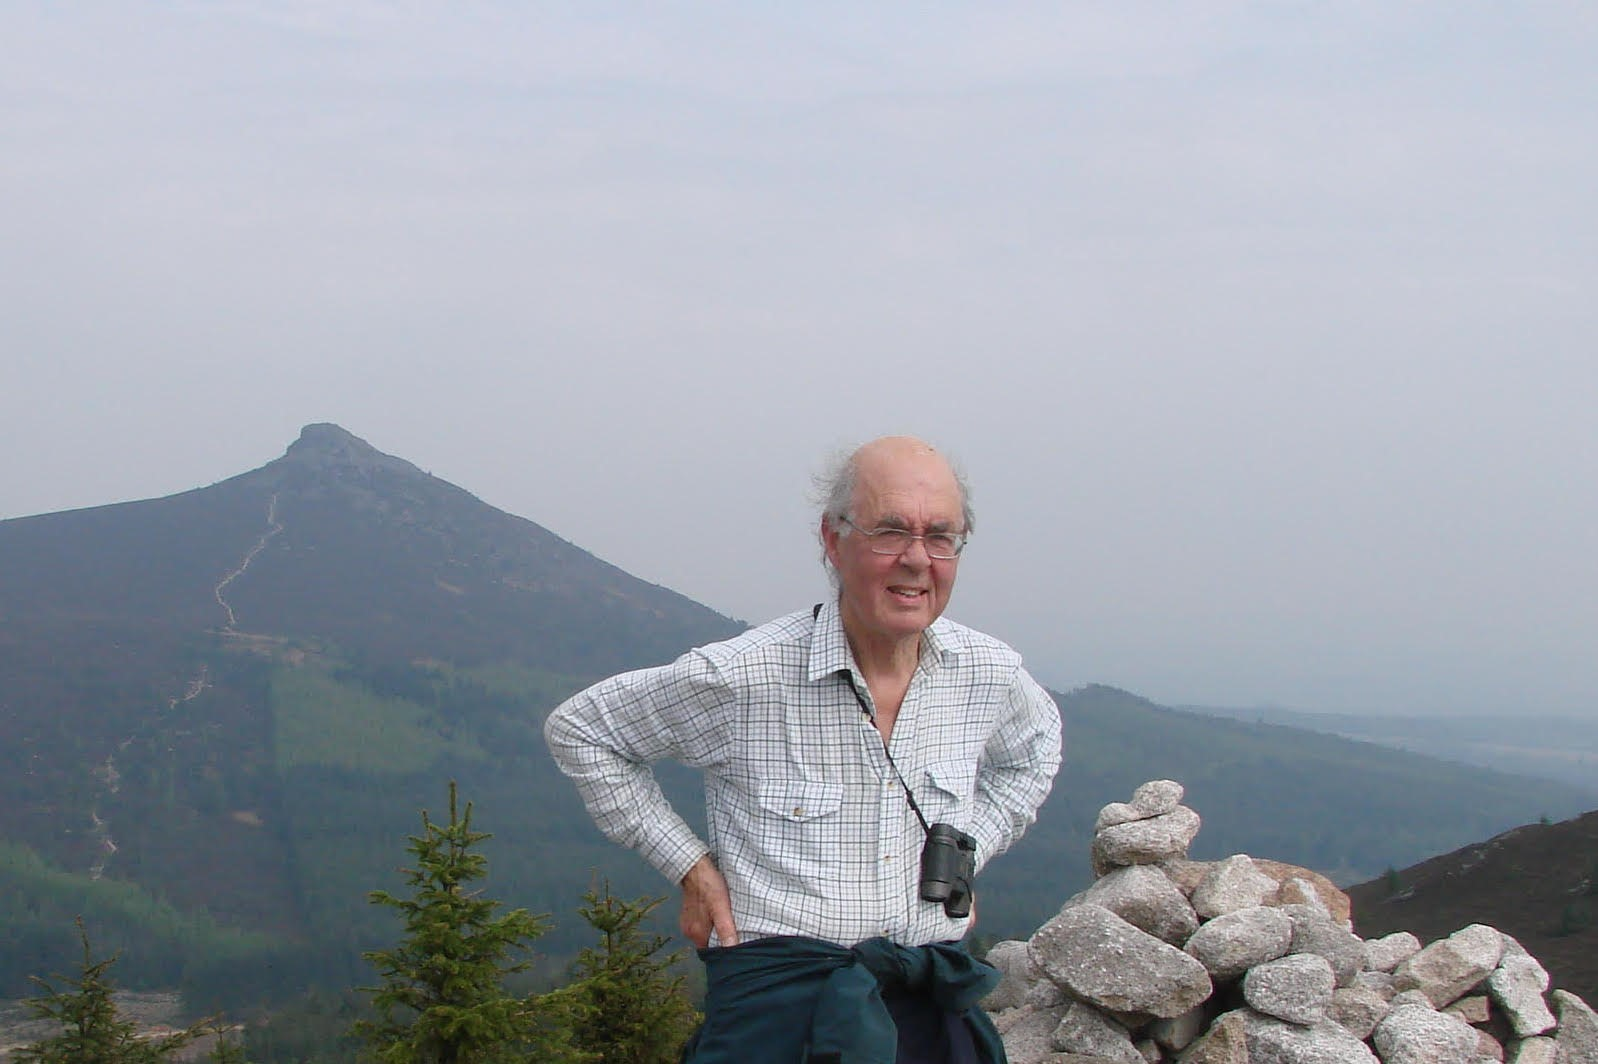 Dr John Hern, the former Medical Director at Aberdeen Royal Infirmary, hillwalking on Bennachie.